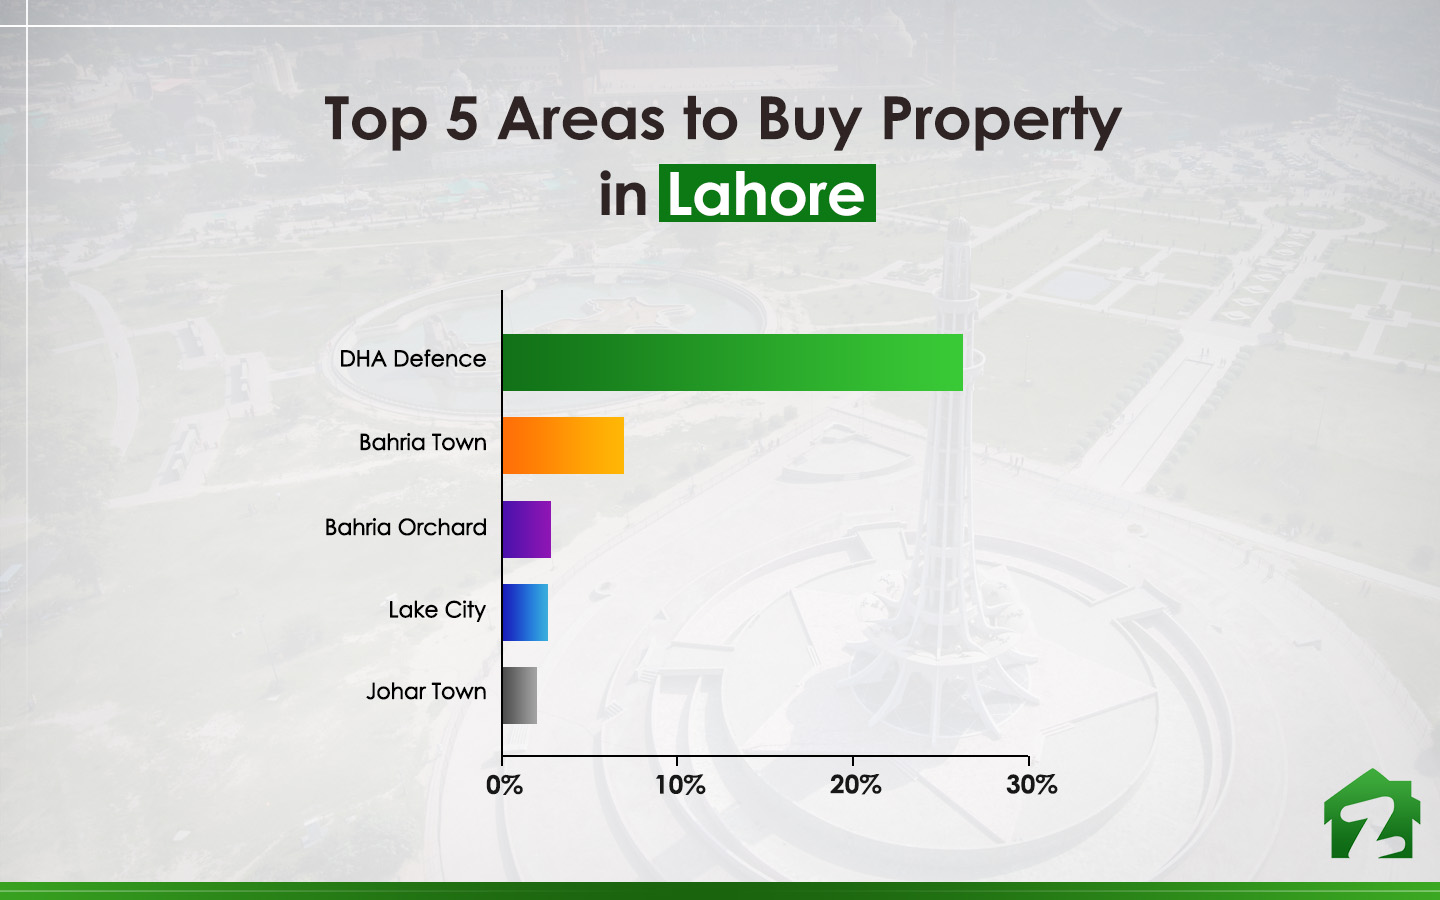 Renowned areas of Lahore to buy property